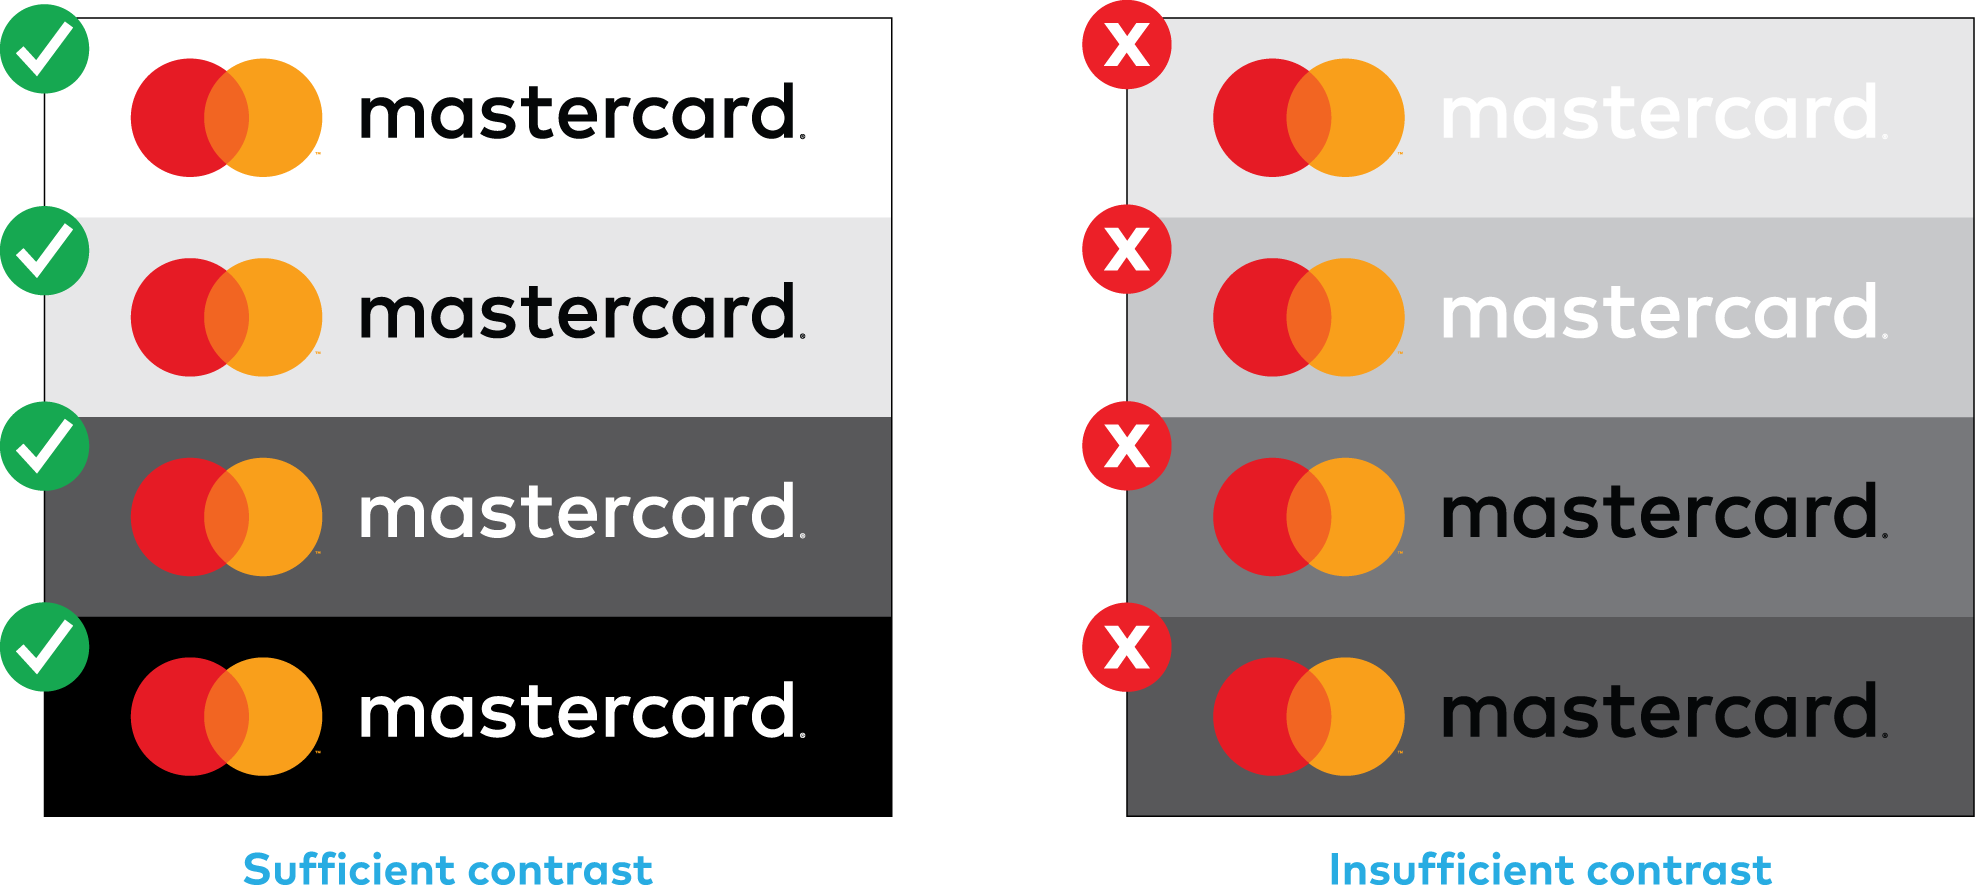 Images of sufficient and insufficient background colors for the Mastercard logo